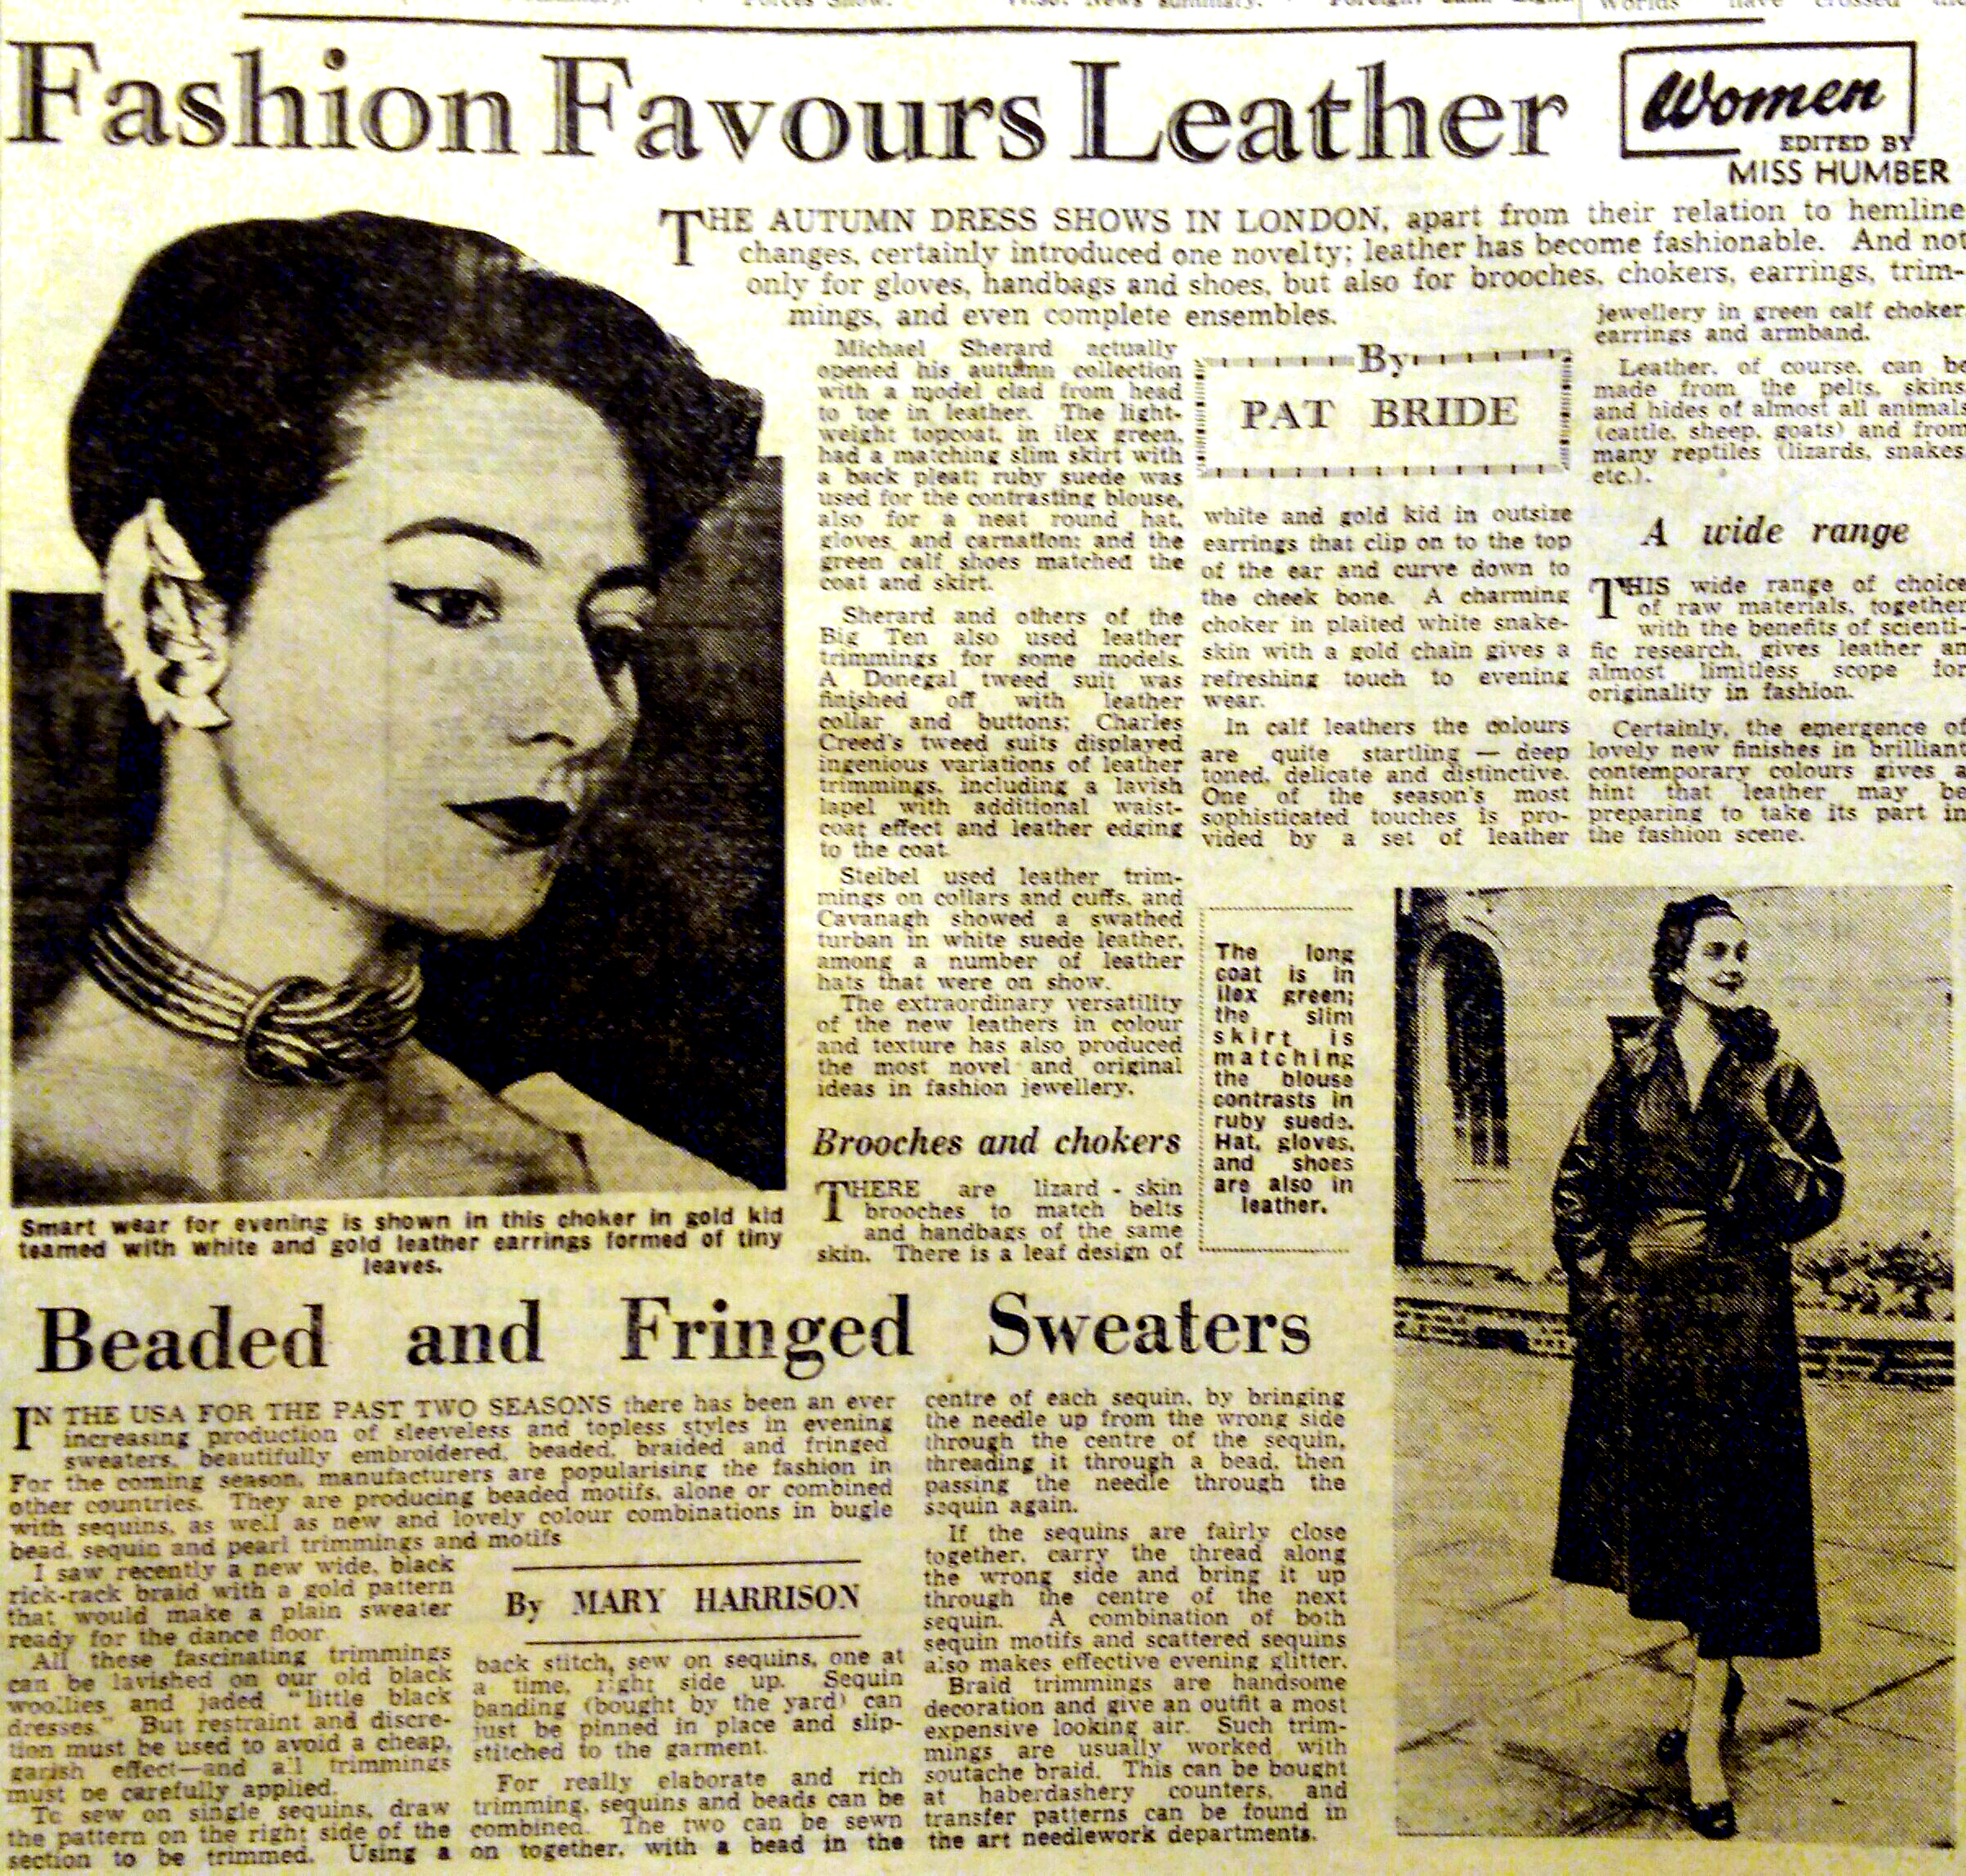 A newspaper report from 1953 titled Fashion Favours Leather. It is about couturier Michael Sherard's leather collection from the same year and shows a dress, choker an coat made of leather.